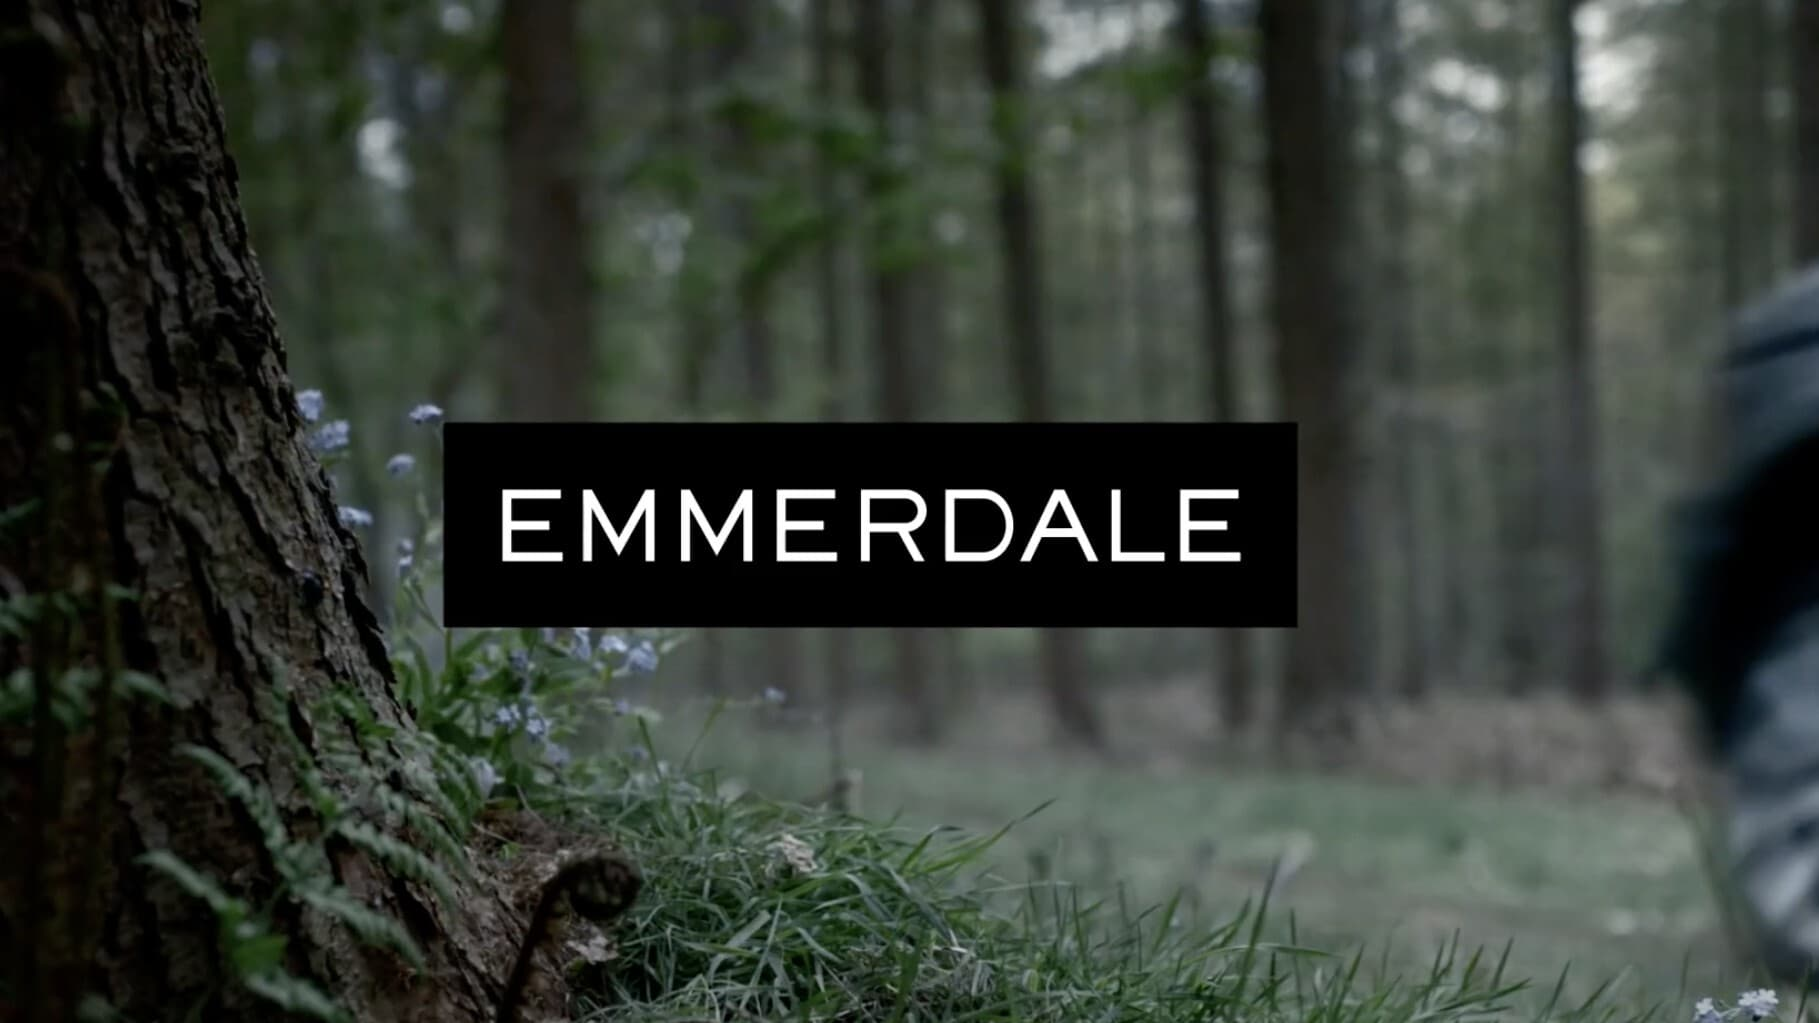 Emmerdale - Season 46 Episode 75 : Friday 29th March 2019